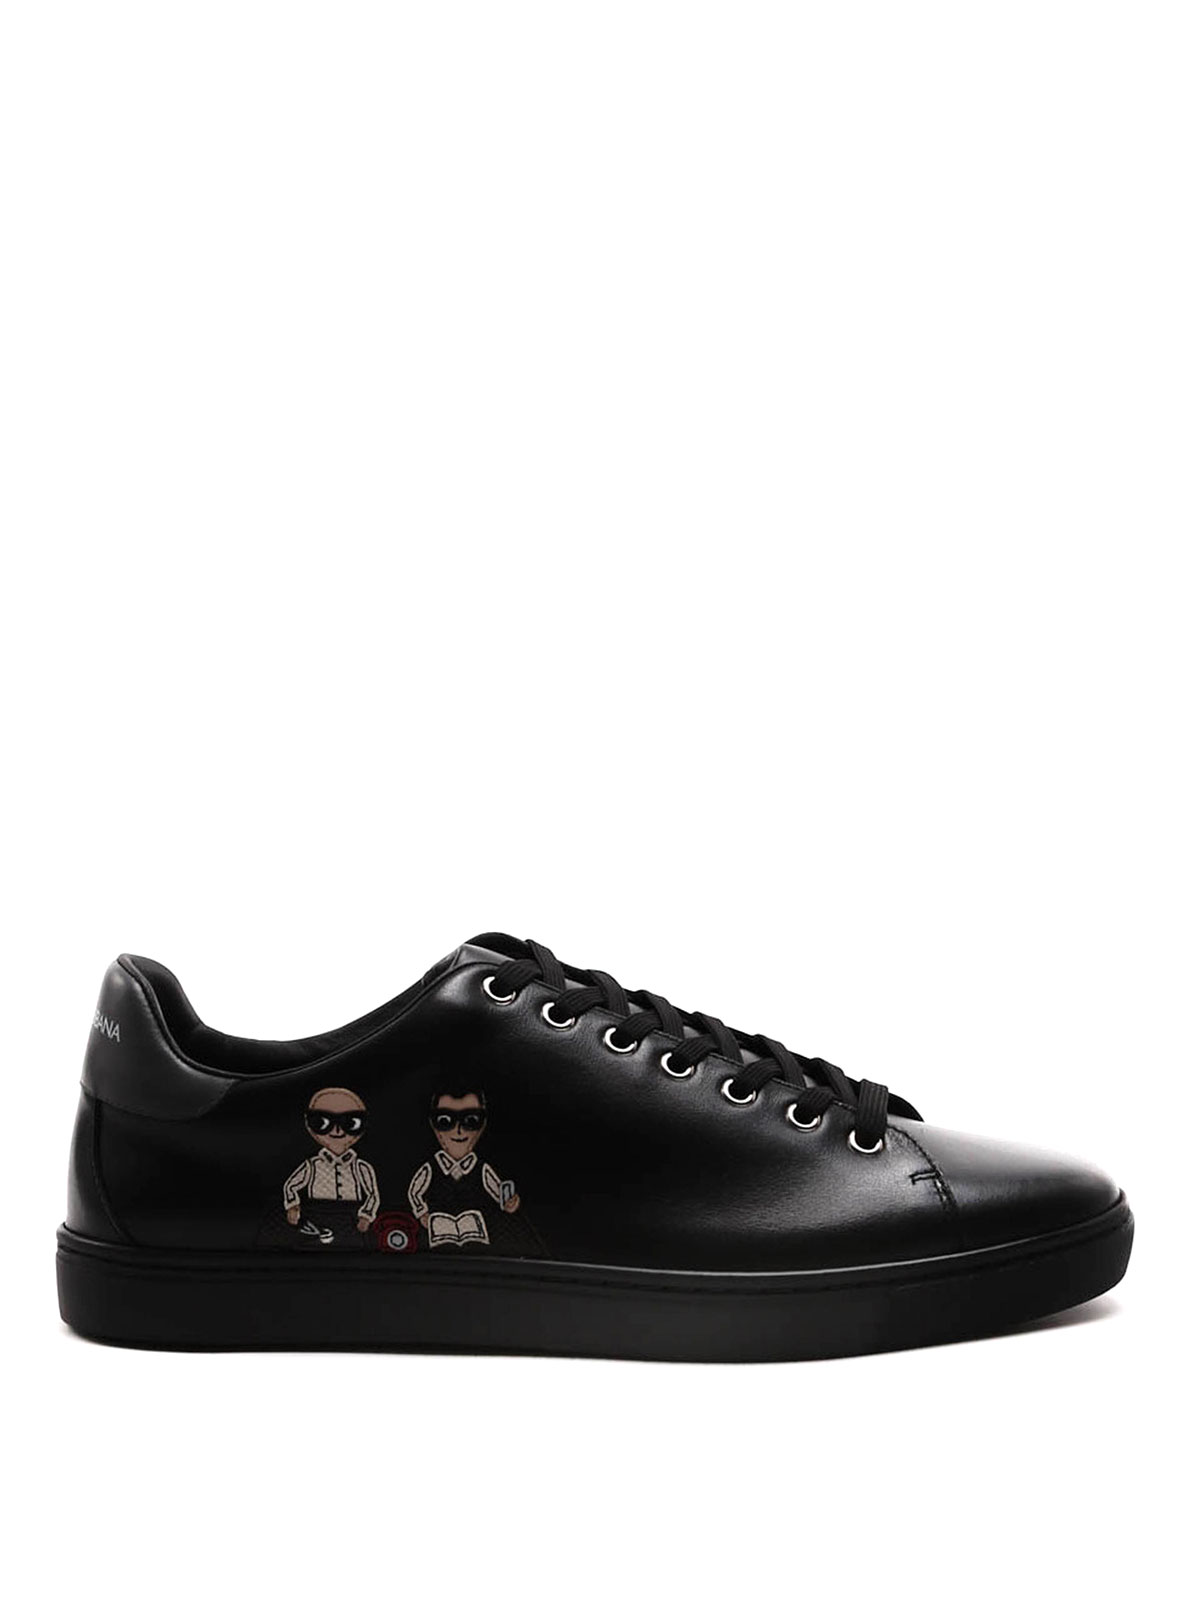 dg family patch leather sneakers by dolce gabbana trainers ikrix. Black Bedroom Furniture Sets. Home Design Ideas